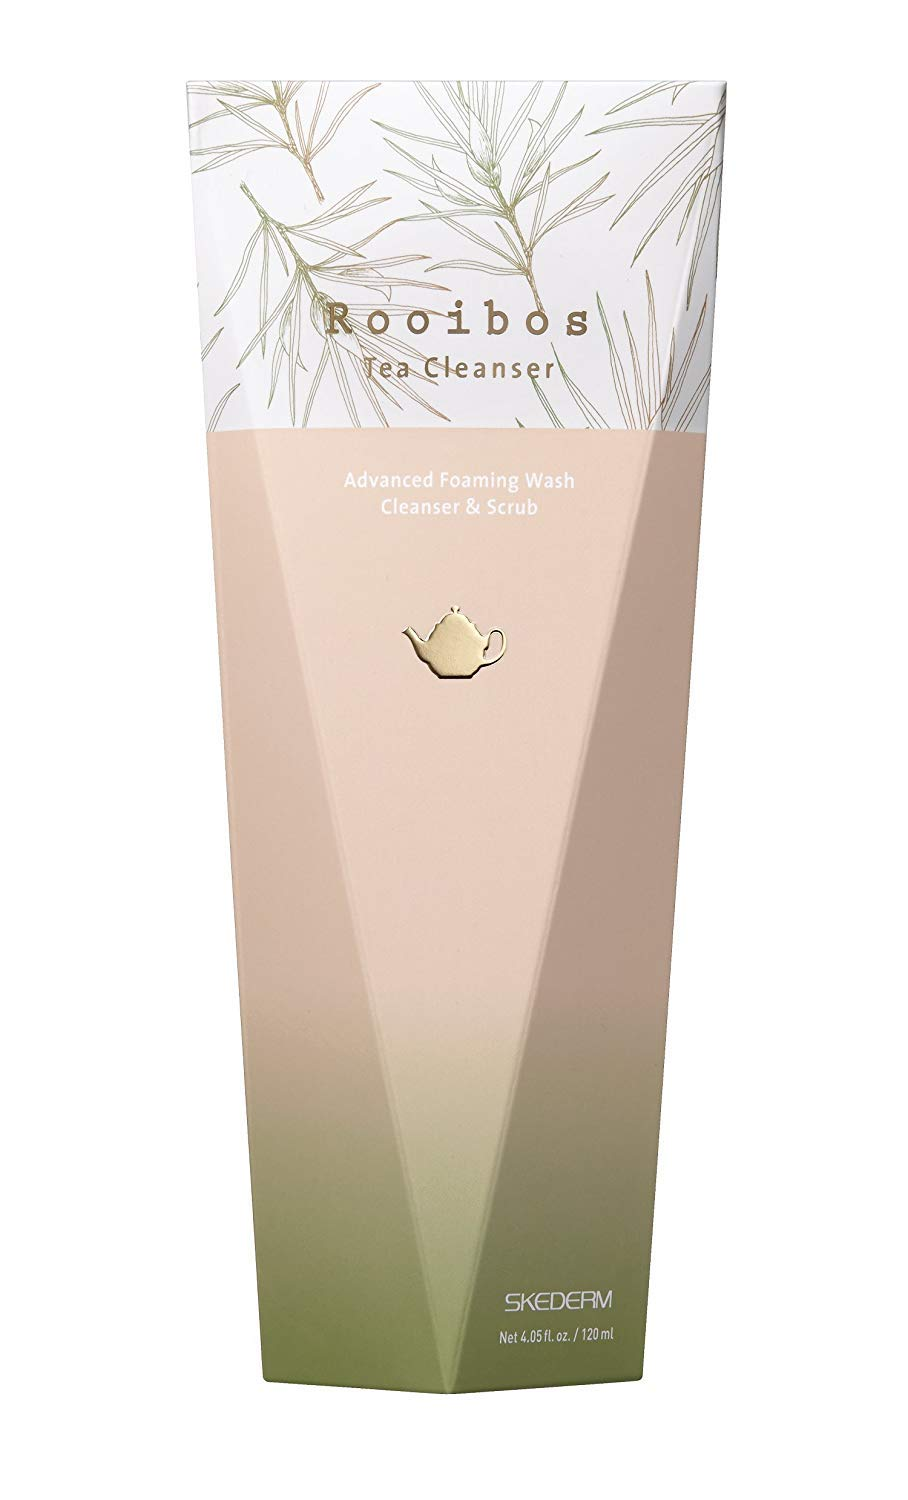 SKEDERM Rooibos Tea Cleanser Gentle Exfoliating Face Wash with Real Rooibos Tea Leaf. 4 fl. oz. / 120ml.